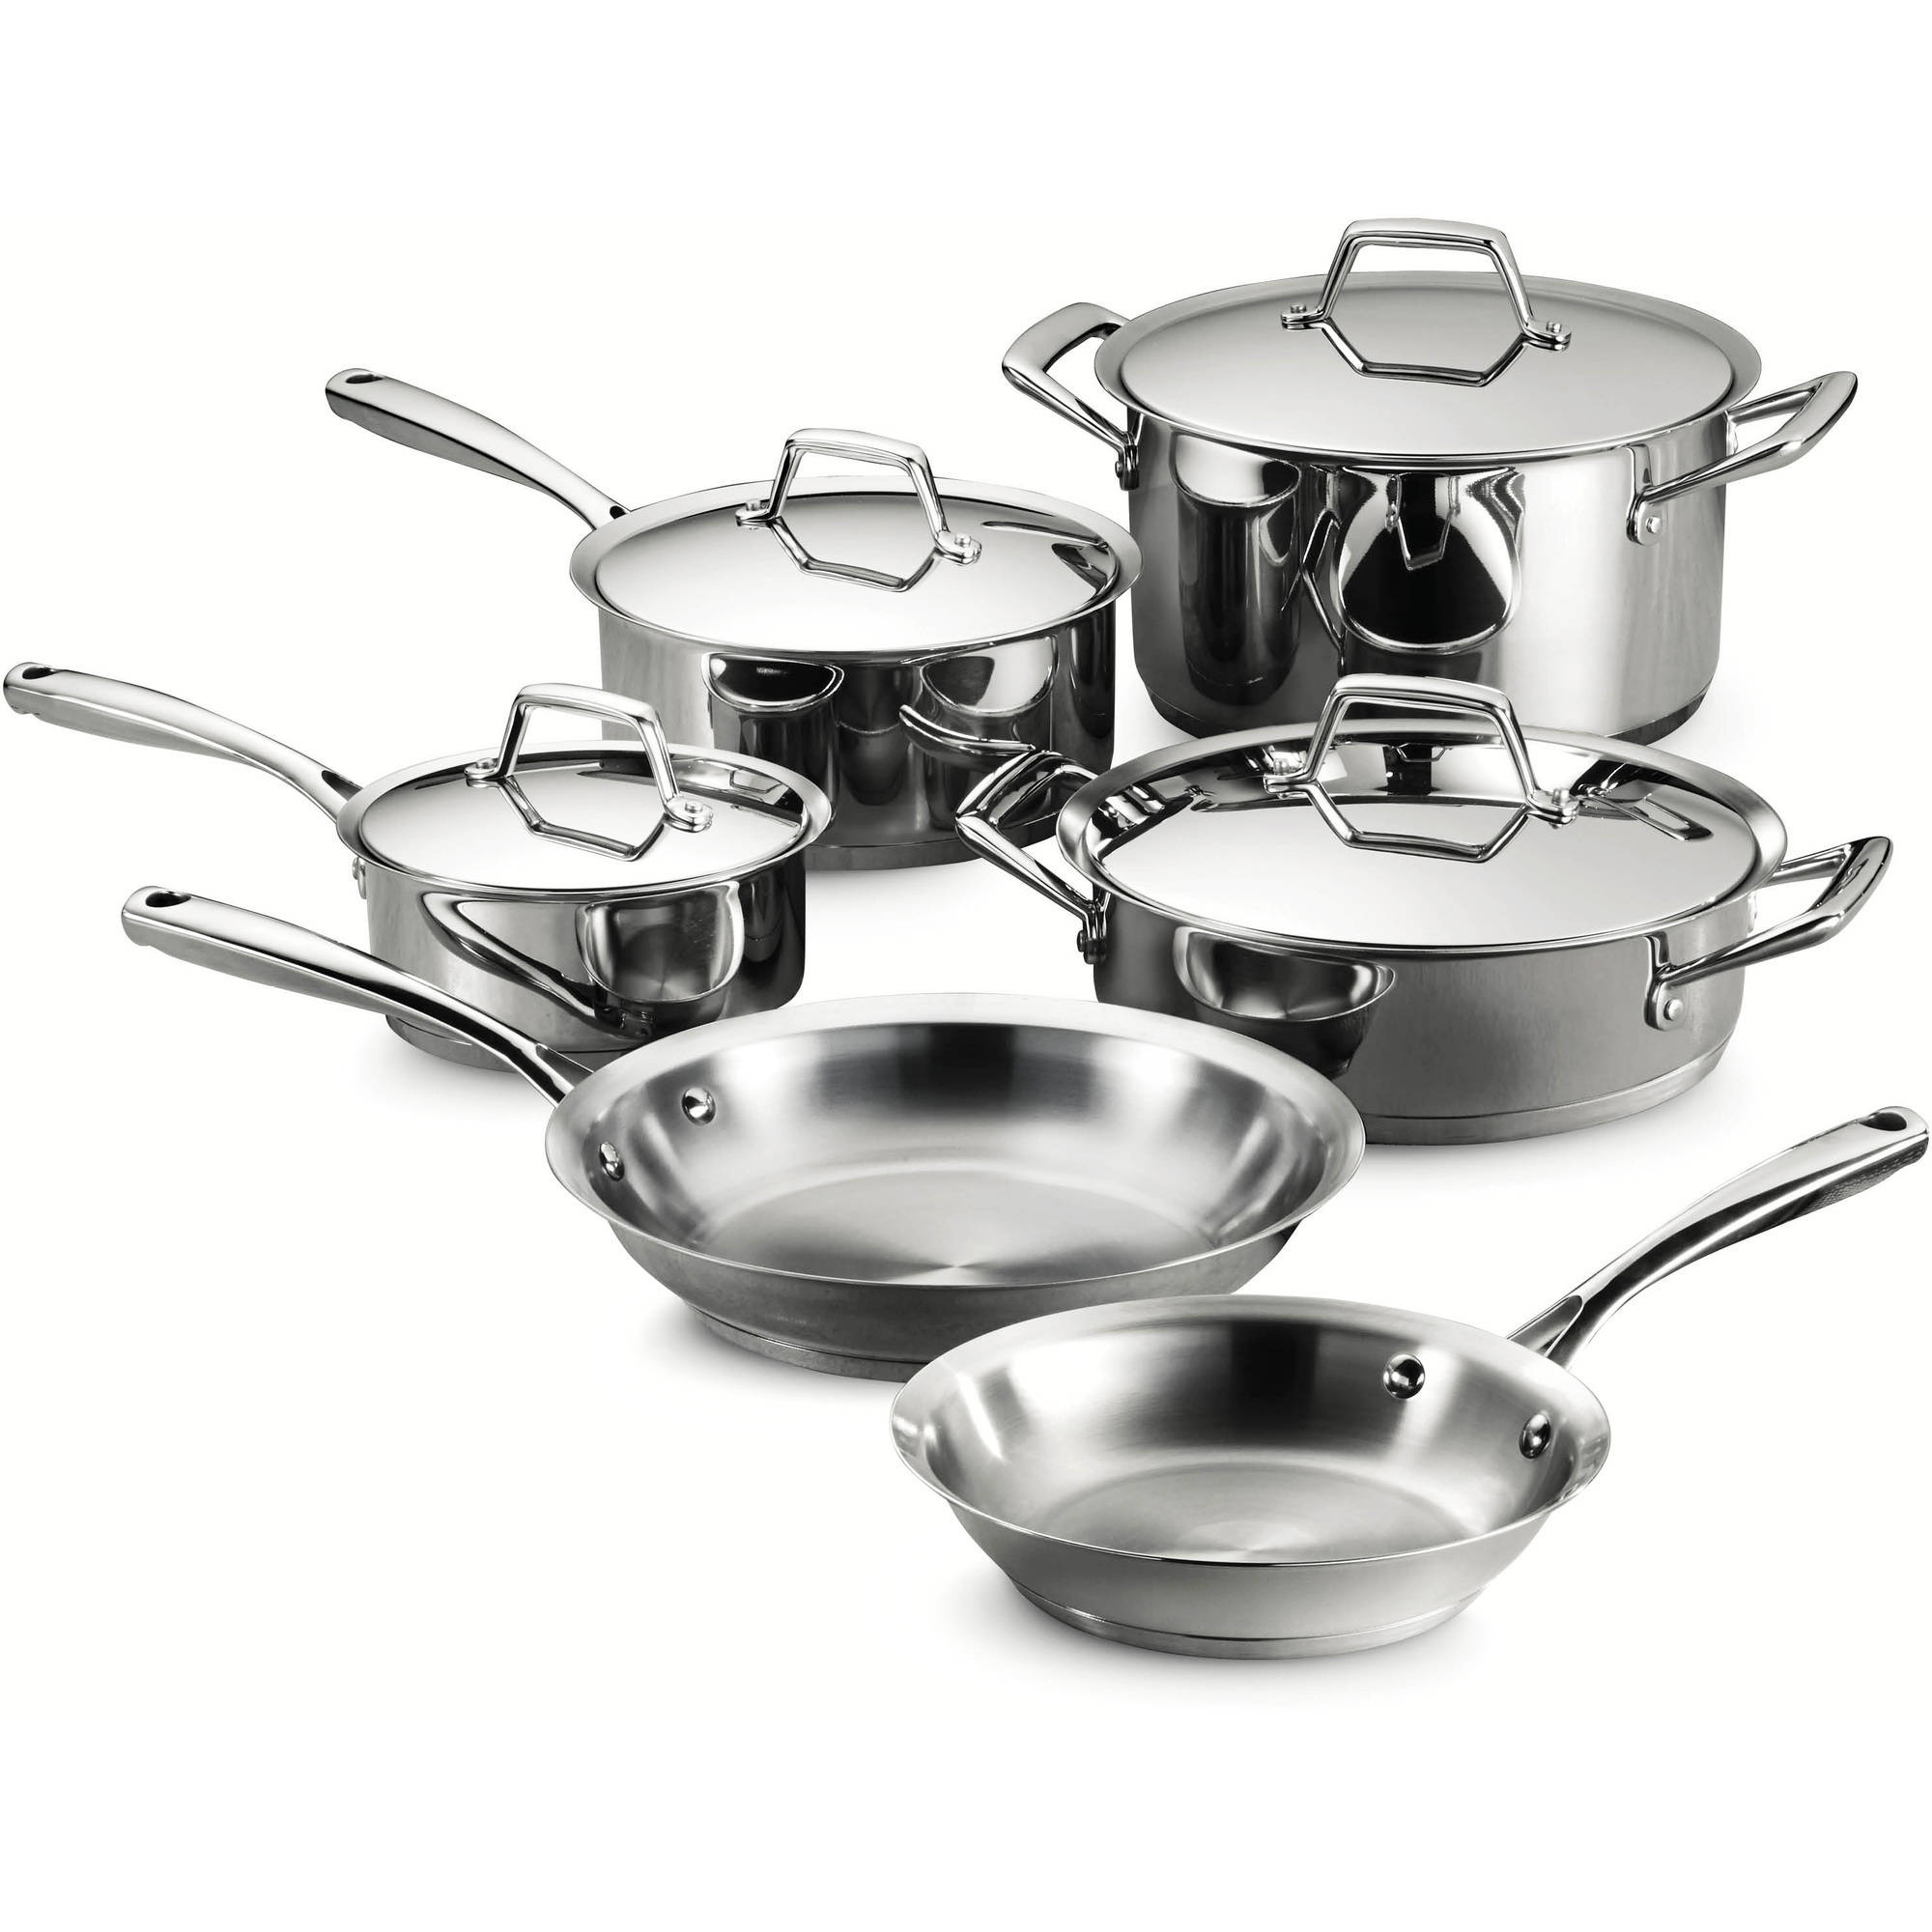 Tramontina Gourmet Prima 10-Piece Stainless Steel Cookware Set by Tramontina USA Inc.